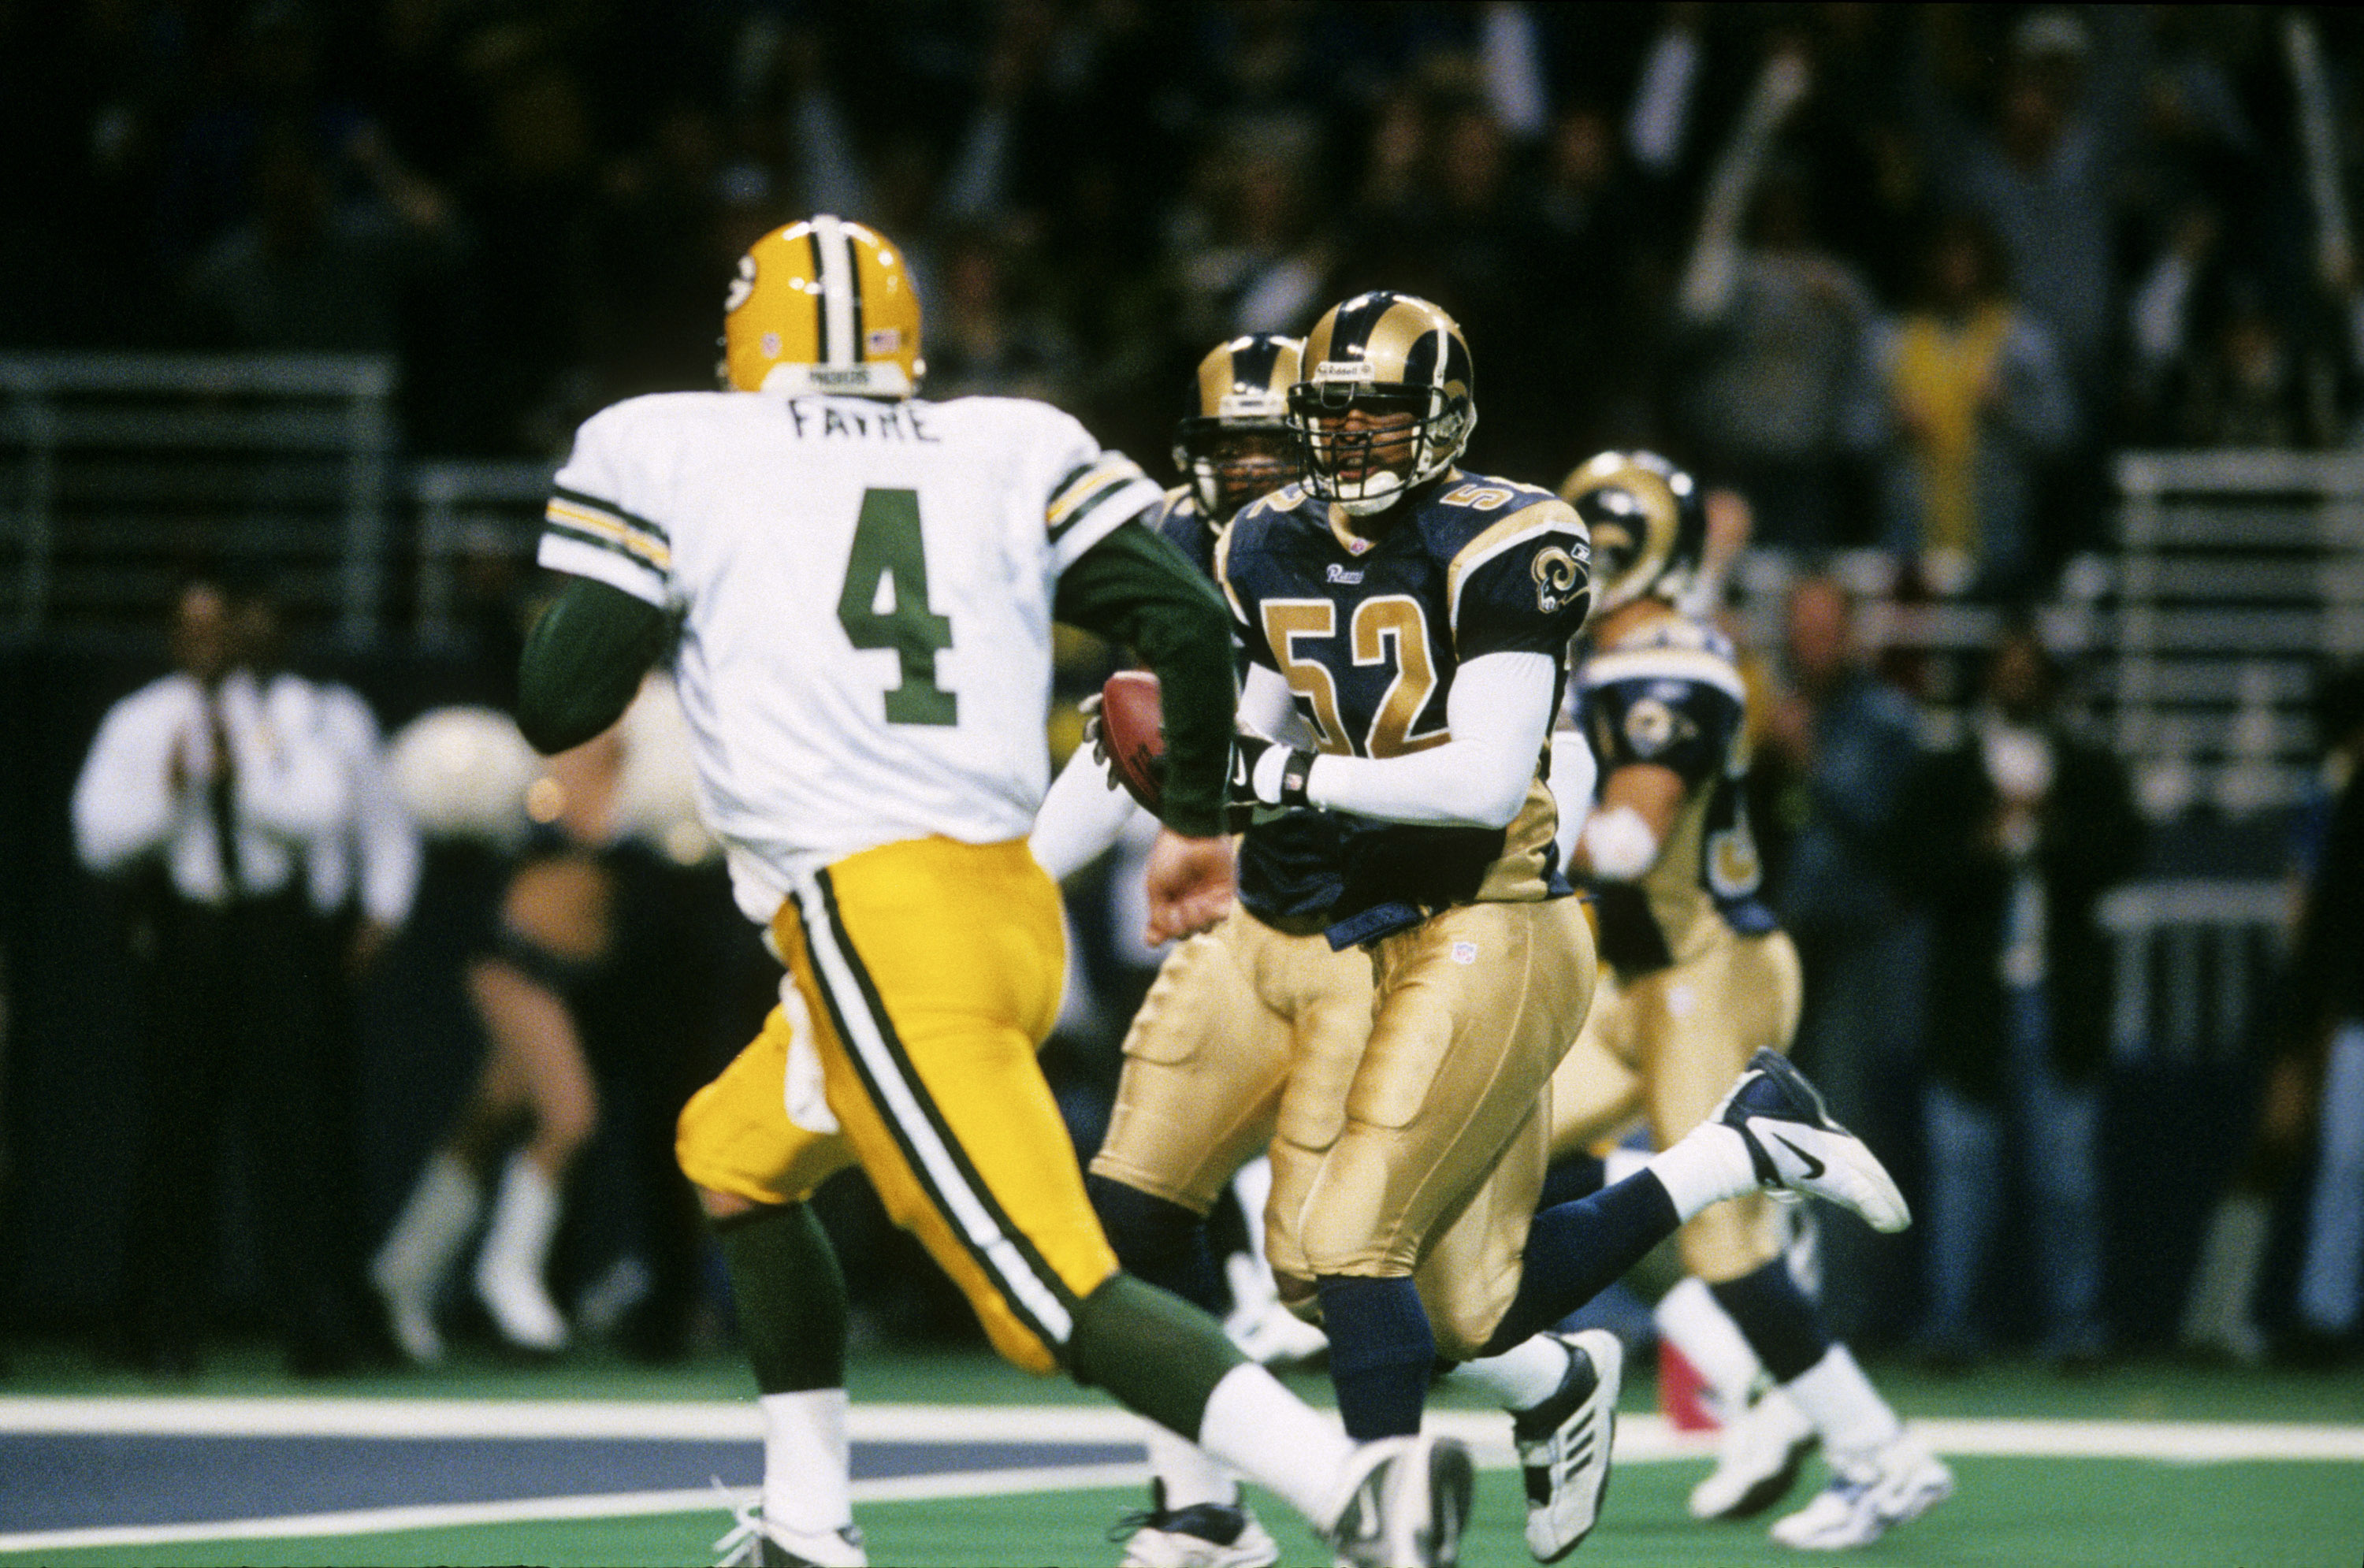 2001 NFC Divisional Playoff Game - Green Bay Packers vs St. Louis Rams - January 20, 2002